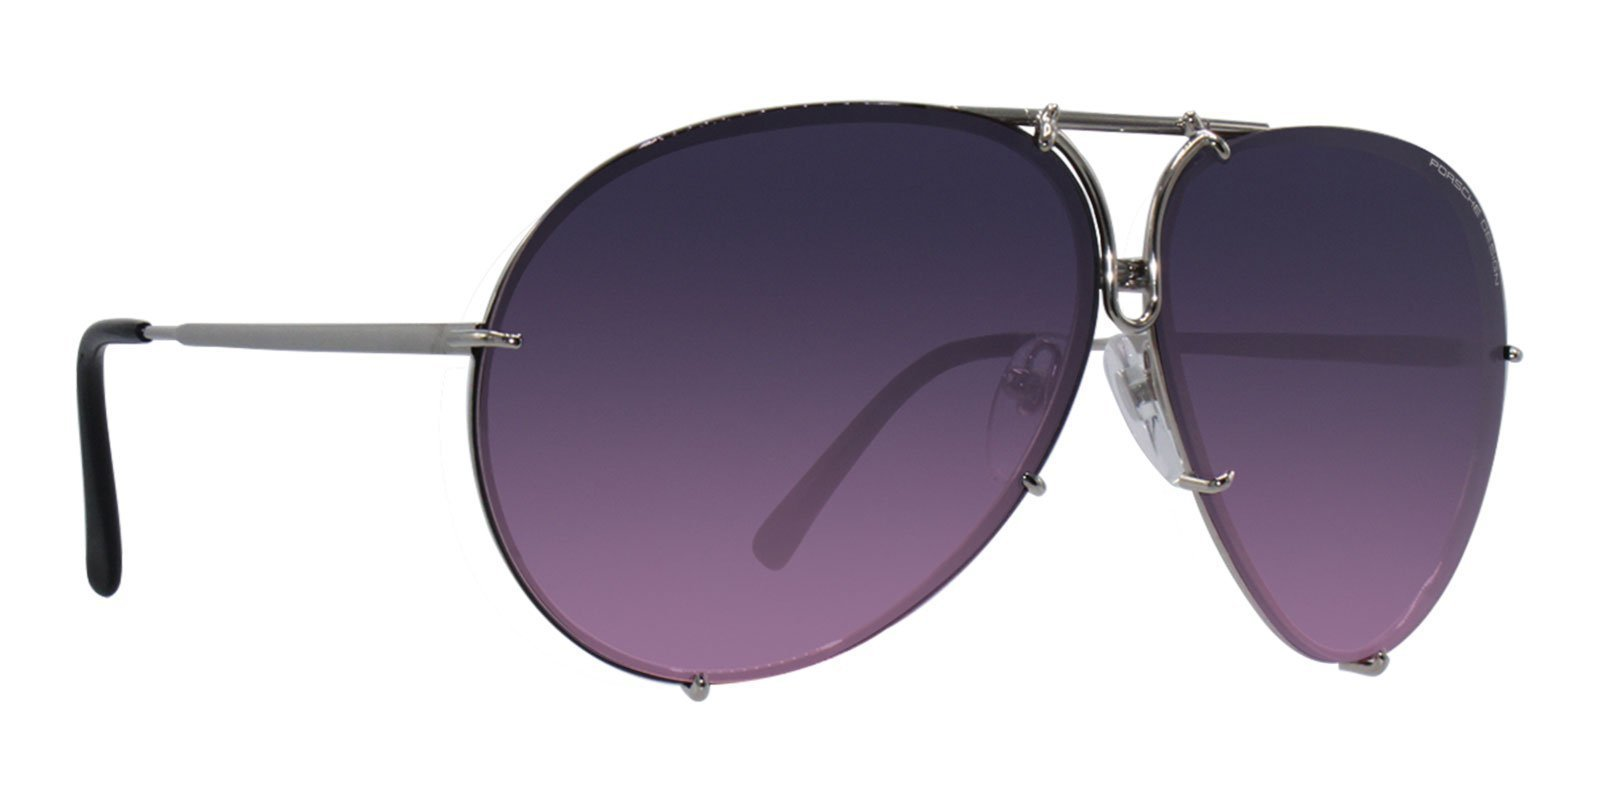 Porsche Design - P8478 Silver Aviator Men Sunglasses - 69mm-Sunglasses-Designer Eyes